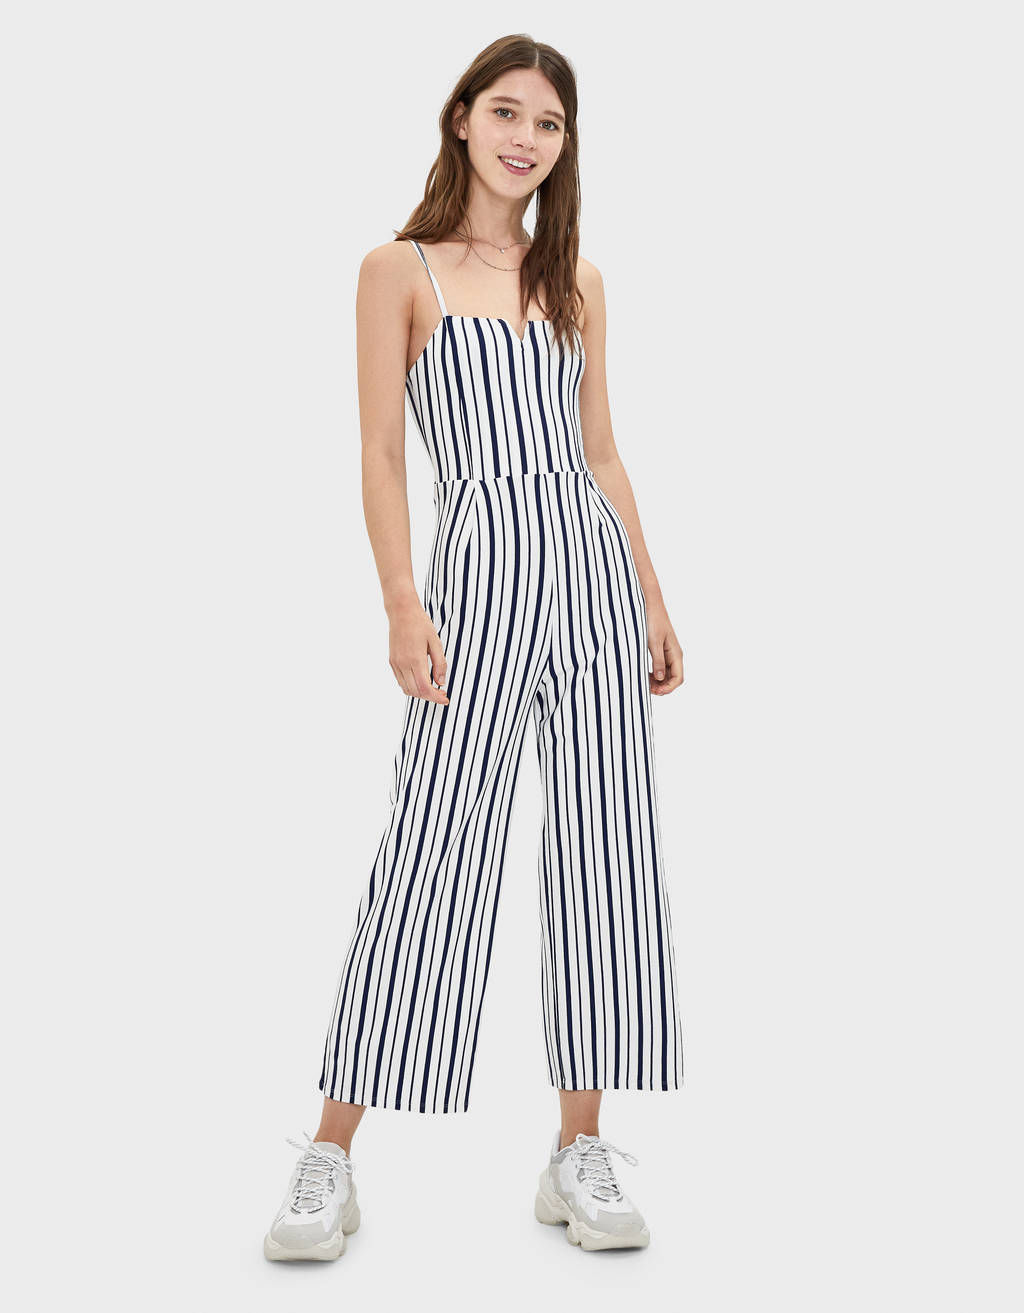 Long jumpsuit with square-cut neckline